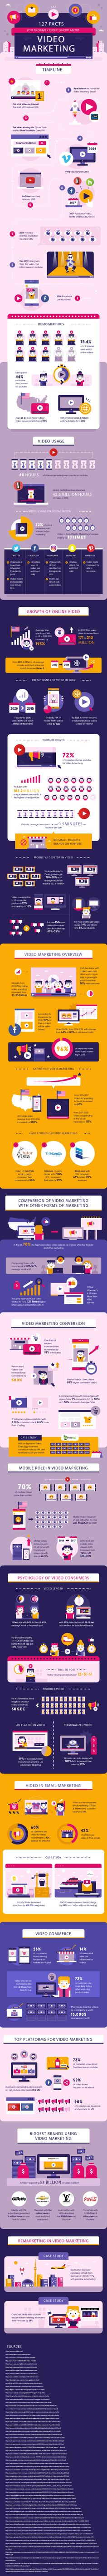 https://websitebuilder.org.uk/blog/127-facts-you-probably-didnt-know-about-the-video-marketing/